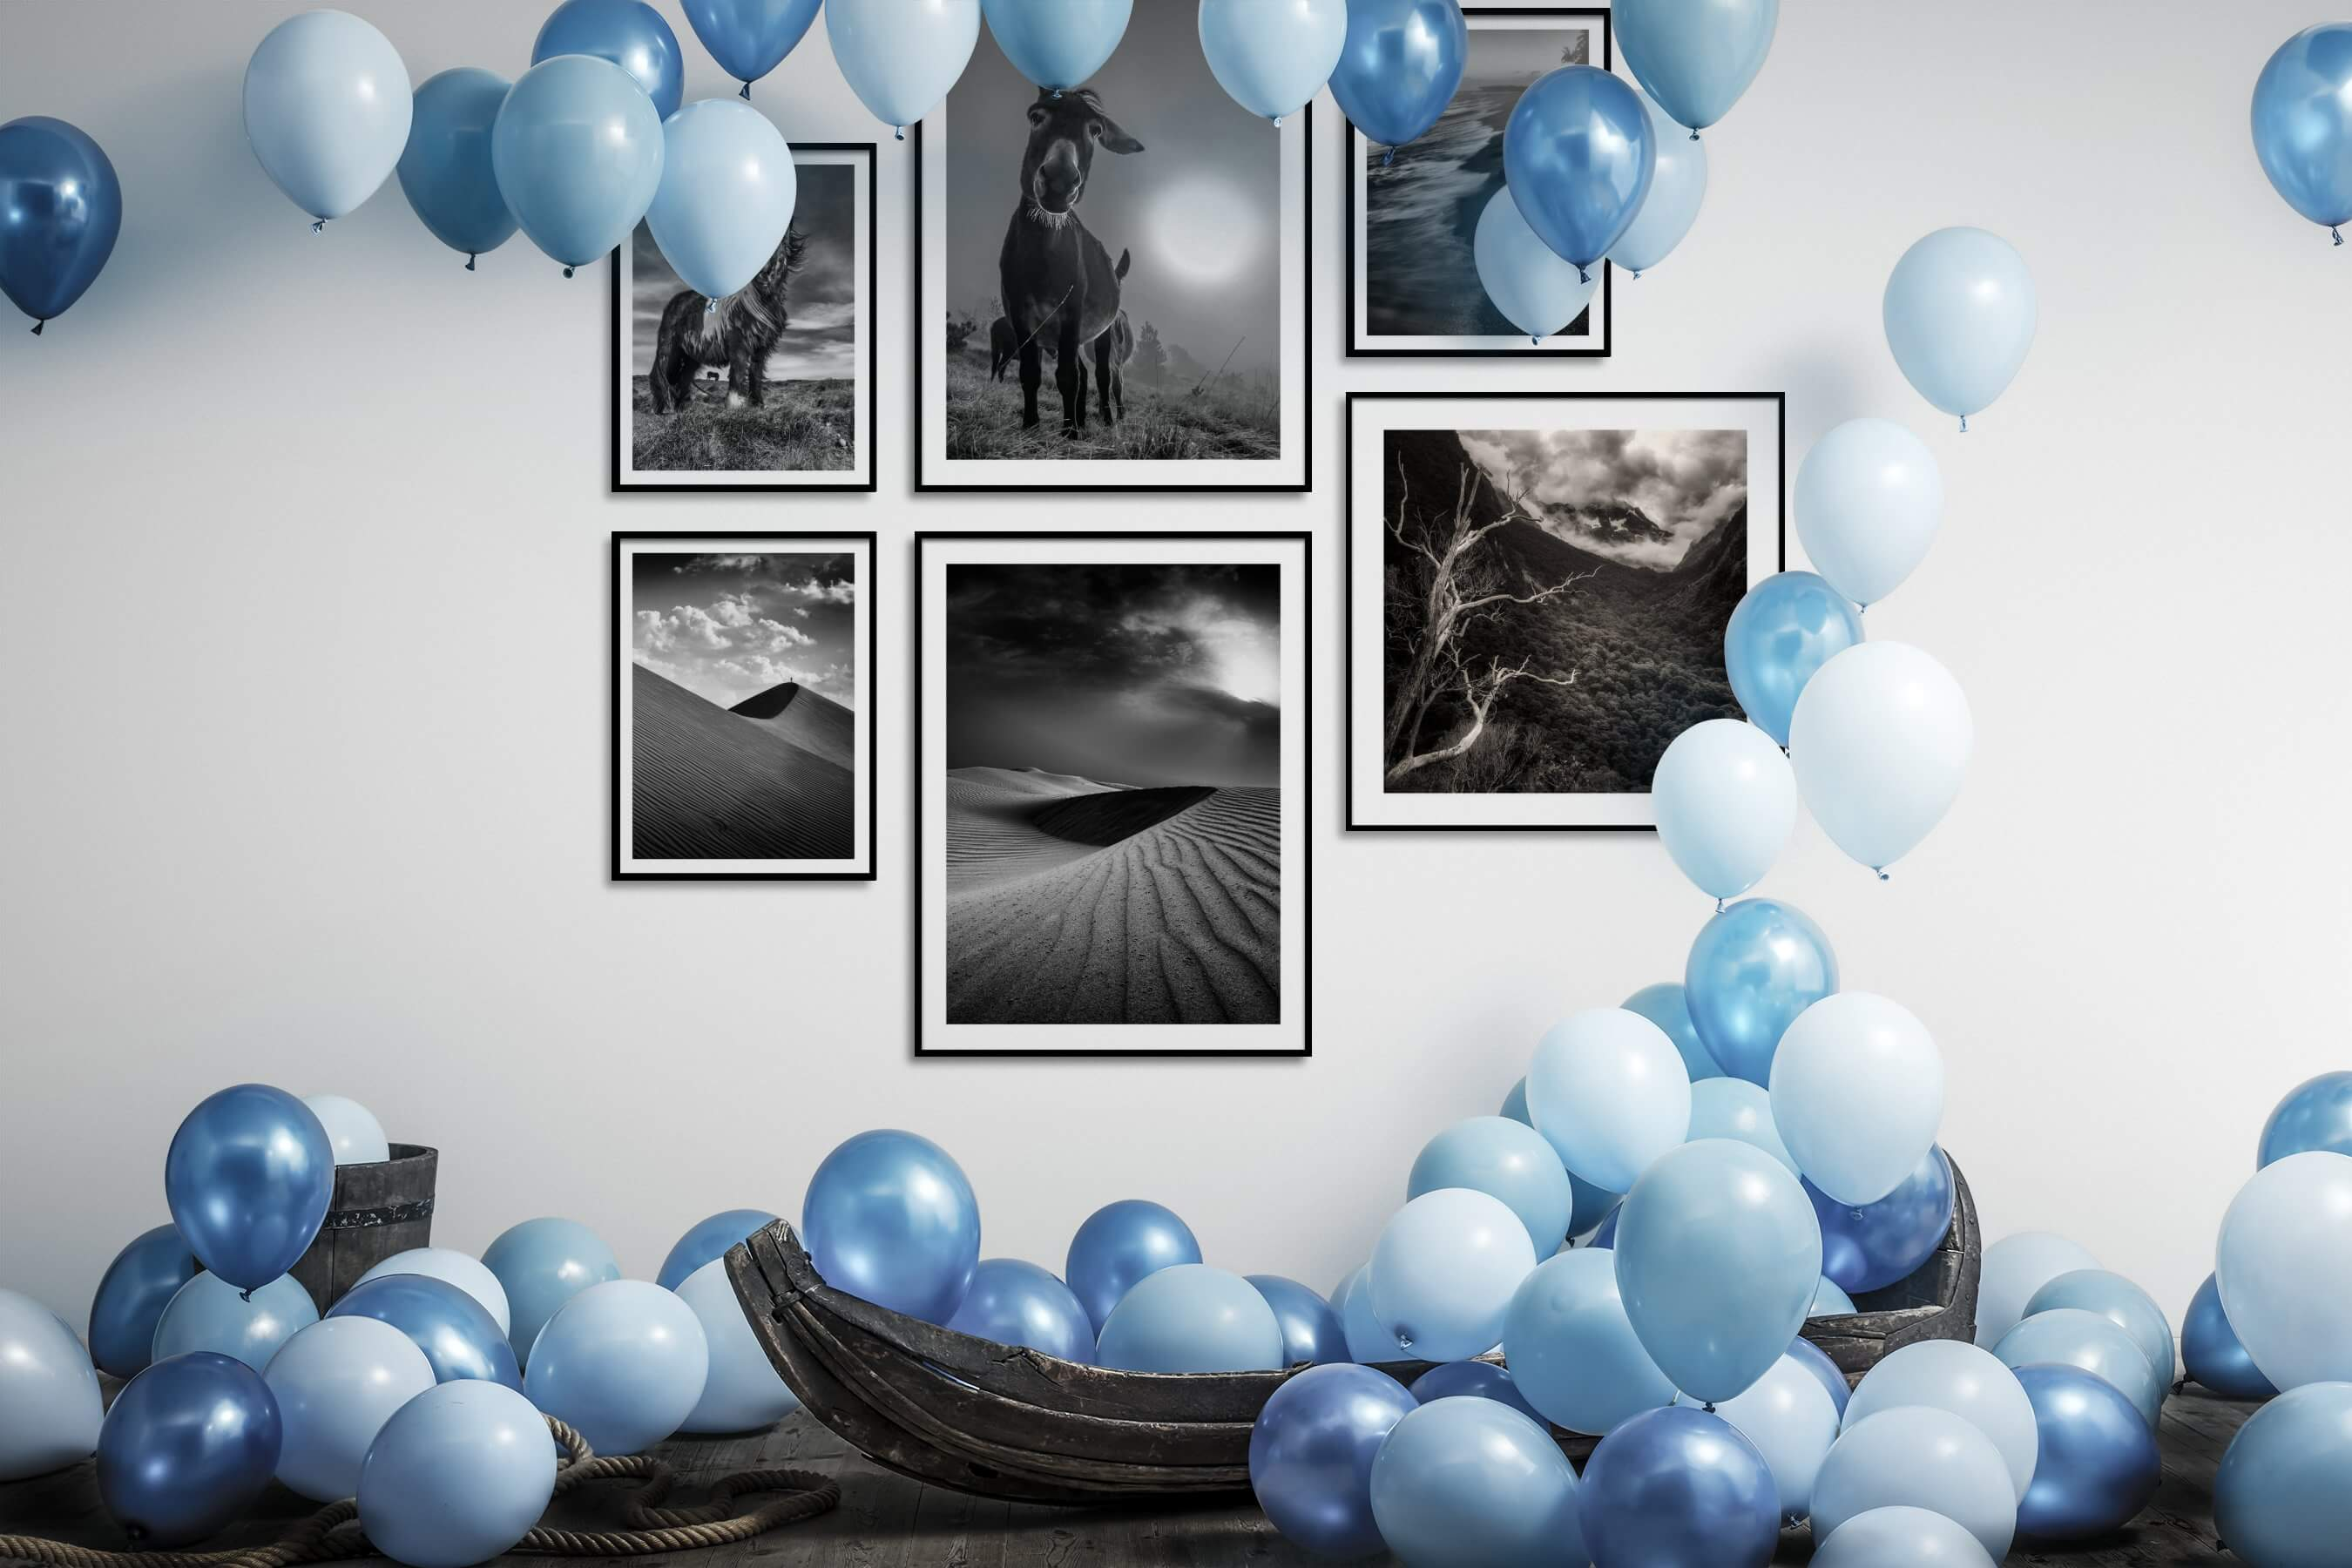 Gallery wall idea with six framed pictures arranged on a wall depicting Black & White, Animals, Country Life, For the Minimalist, Nature, For the Moderate, and Beach & Water